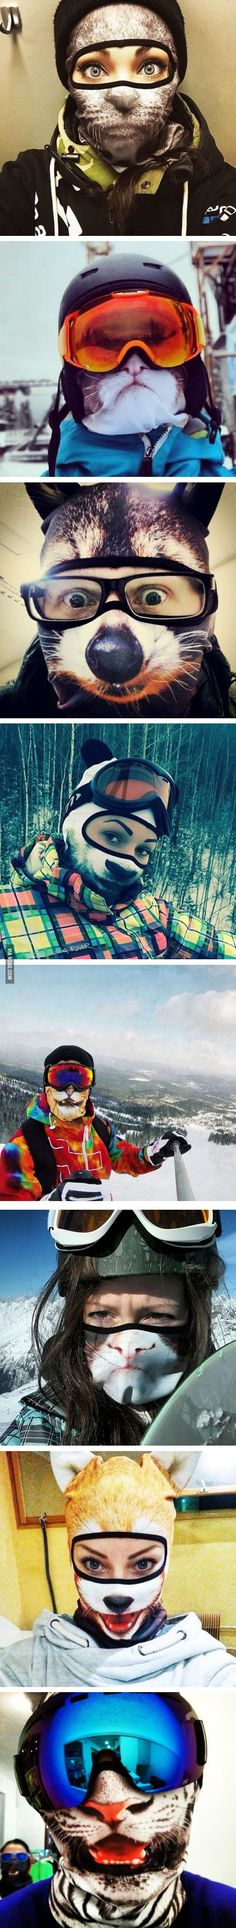 Animal Ski Masks By Teya Salat - 9GAG